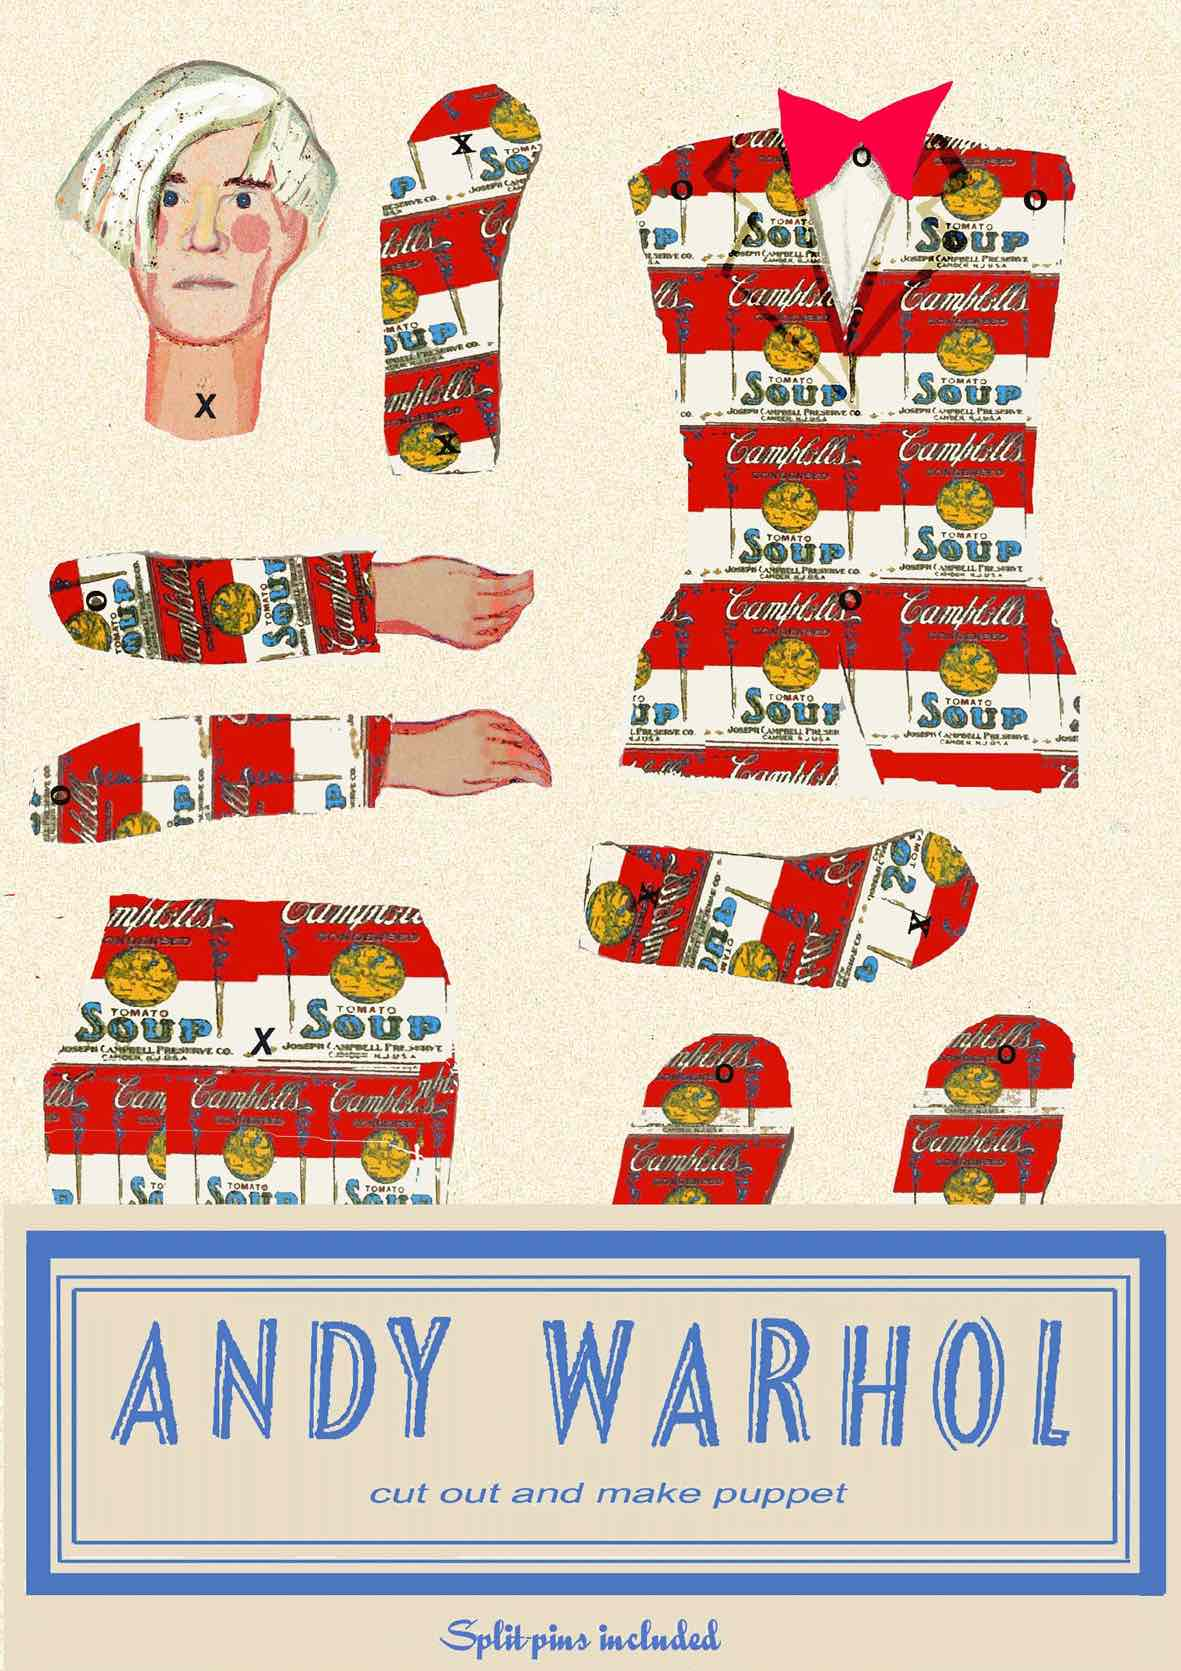 Cut Out Puppet of Andy Warhol